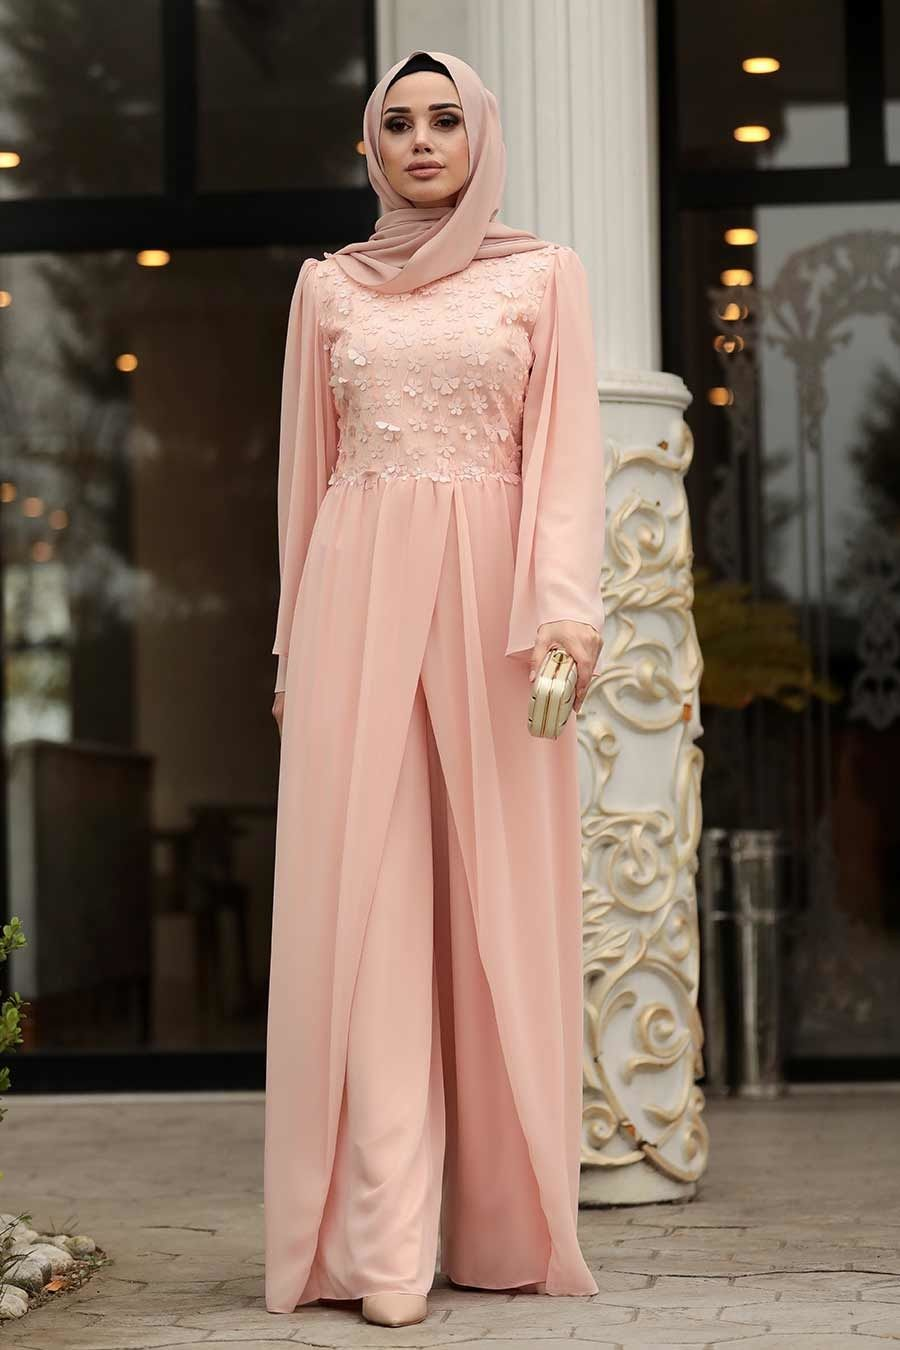 Photo of Nayla Collection Three Dimensional Floral Powder Hijab Evening Dress Tulum 3932PD Tes …